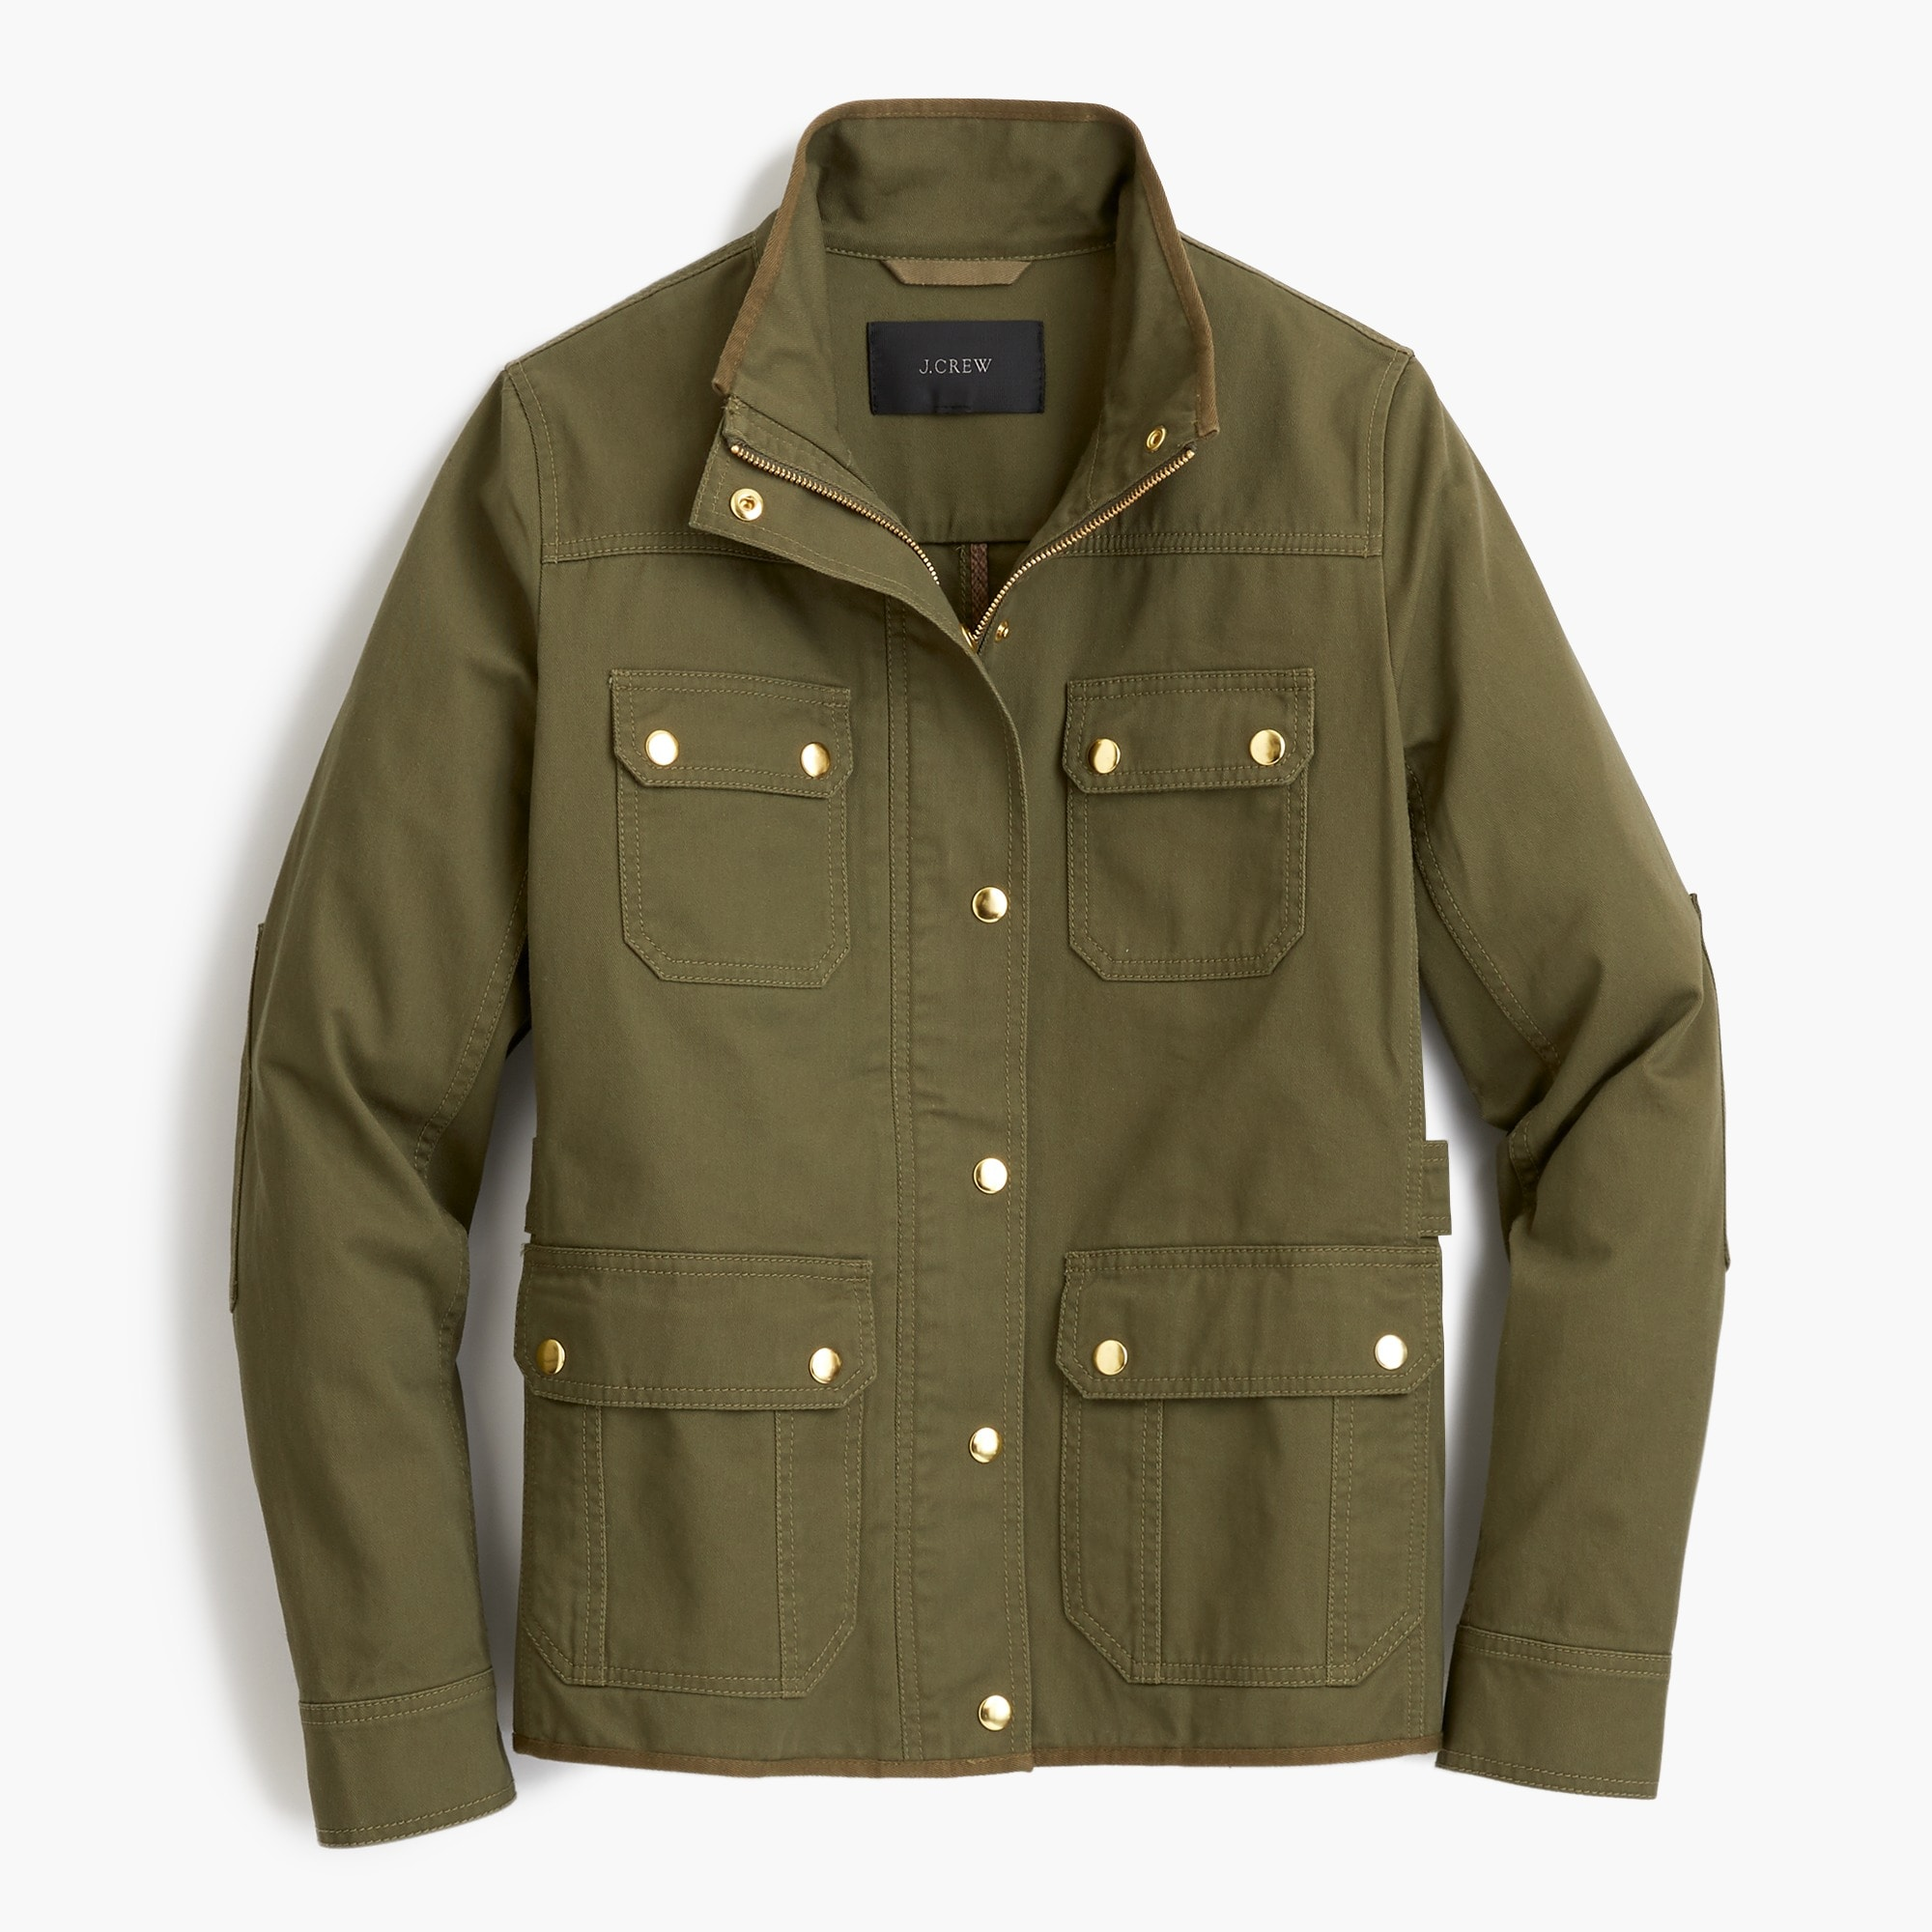 Petite uncoated downtown field jacket